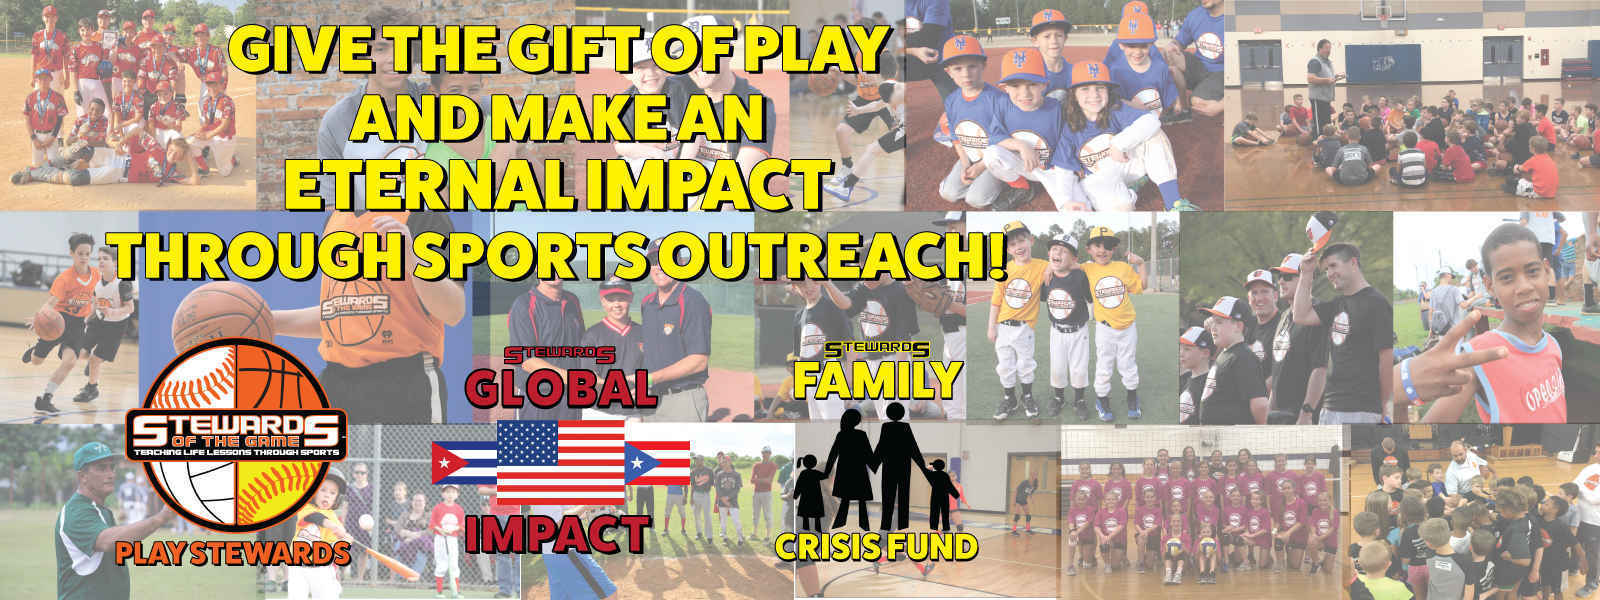 Make an IMPACT both LOCALLY and GLOBALLY through SPORTS OUTREACH! image